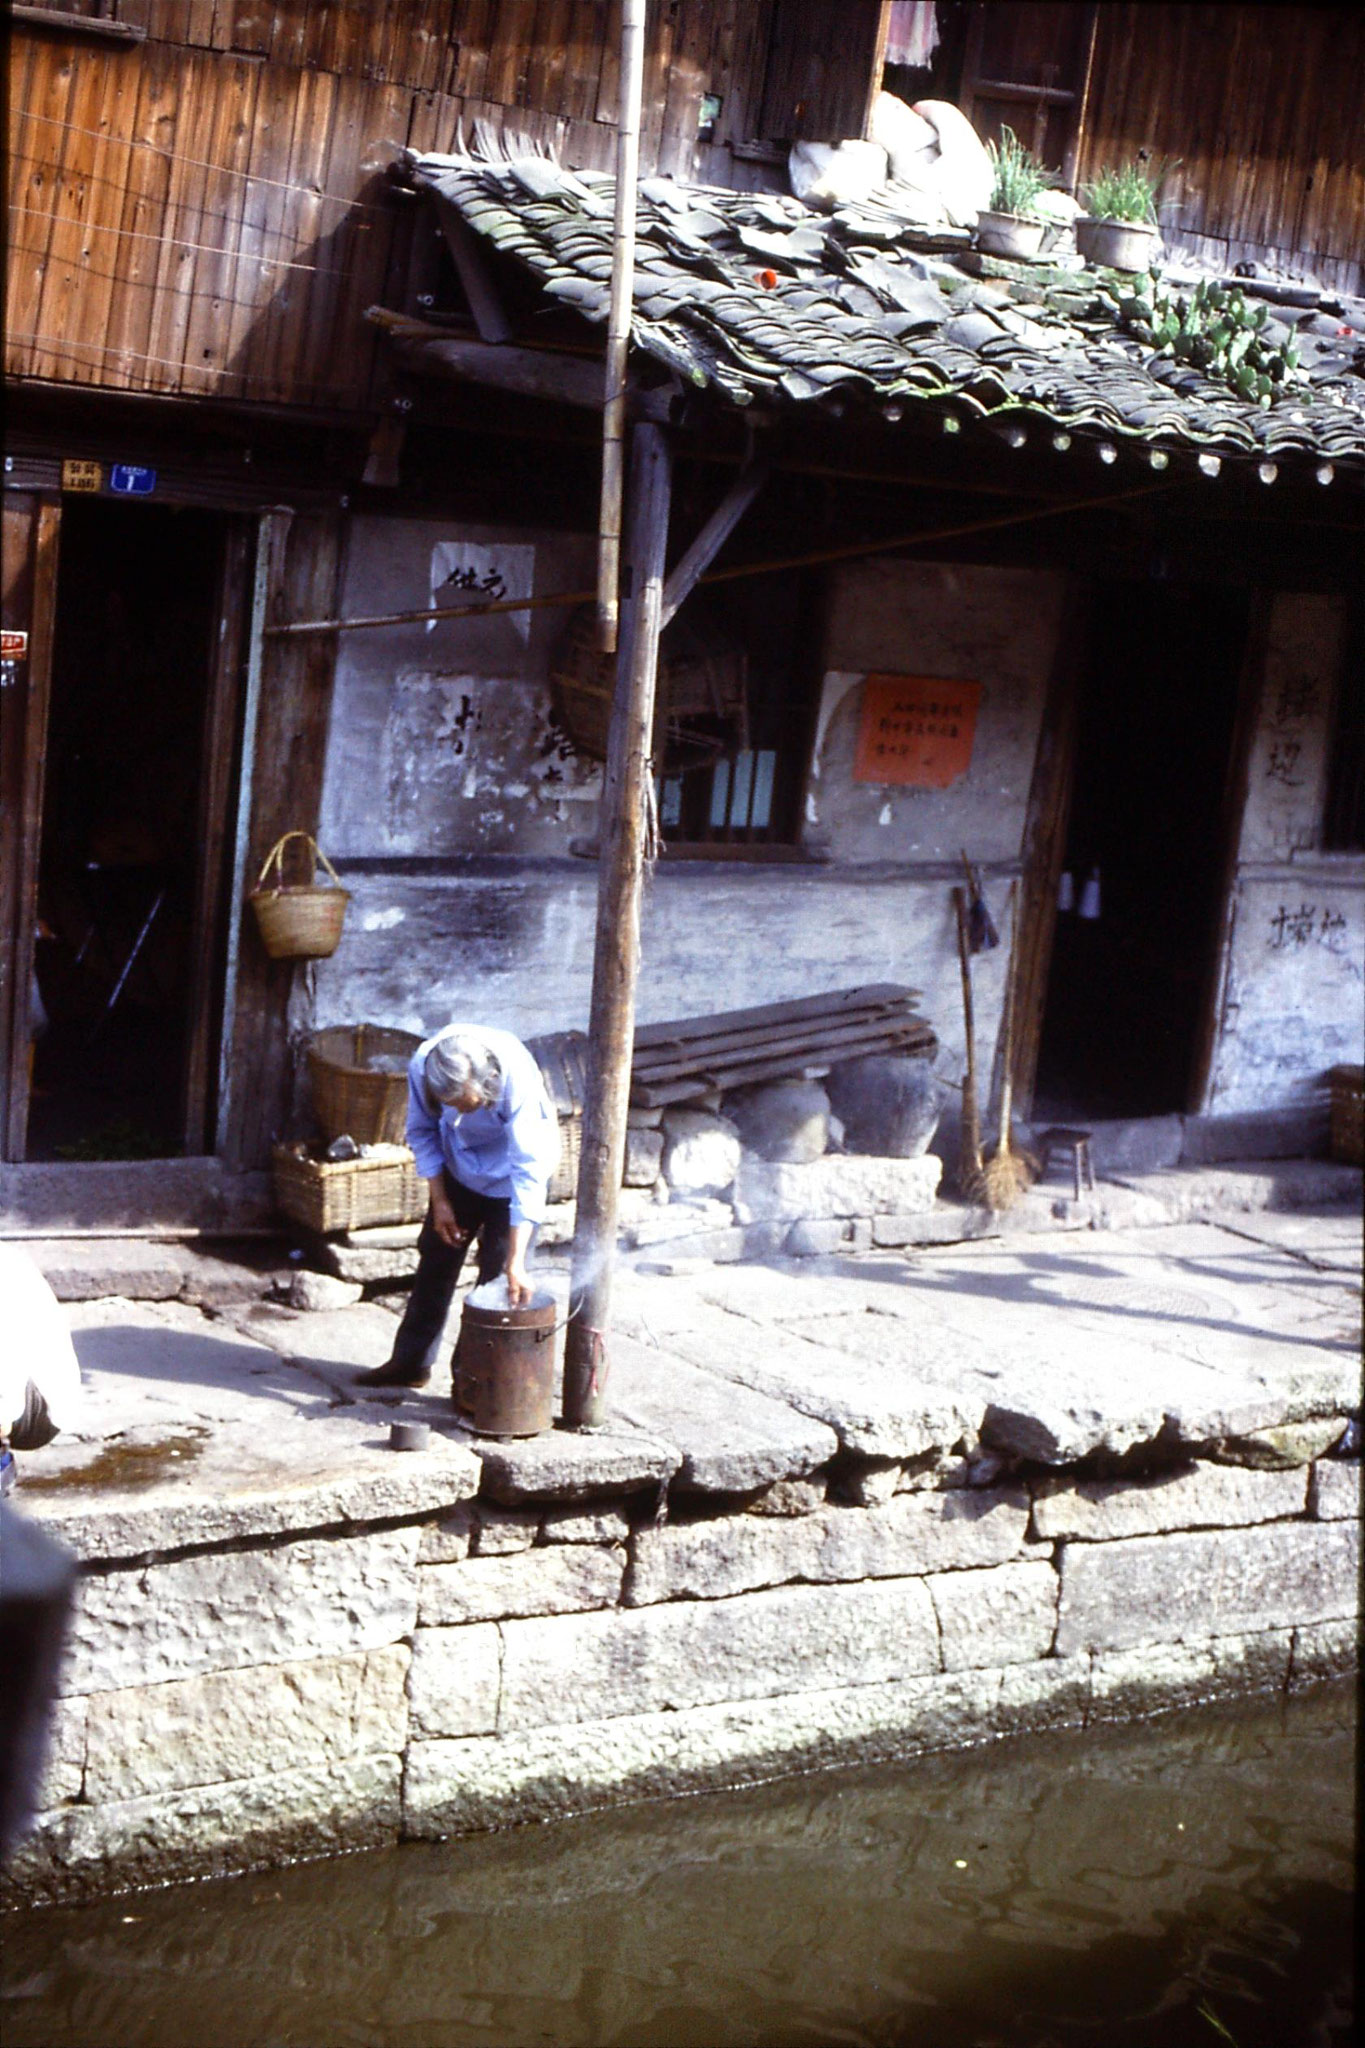 3/6/1989: 0: old woman smoking